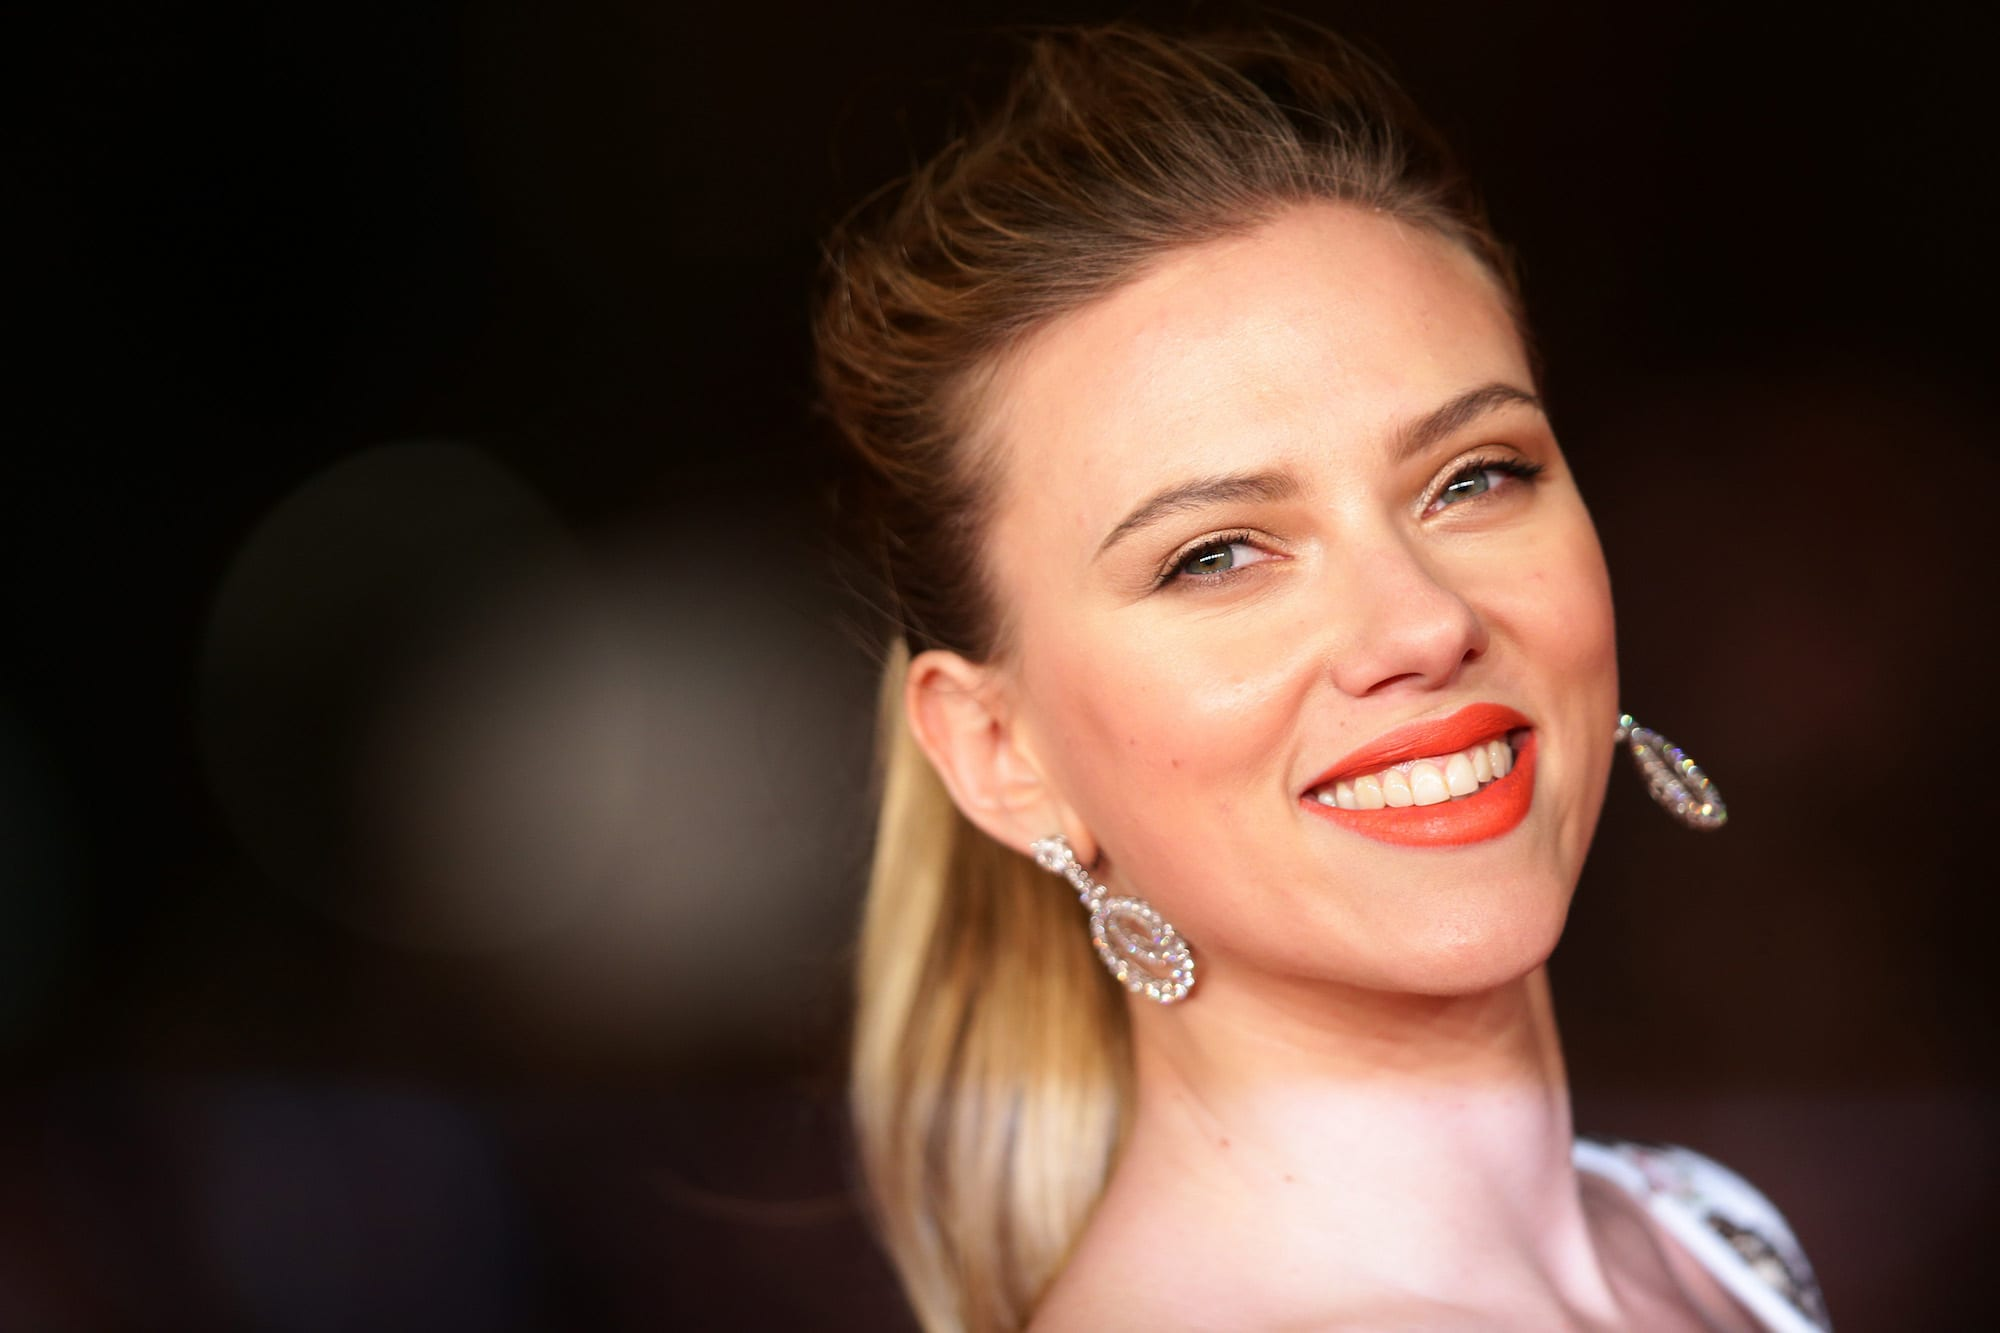 It's only been a year since Scarlett Johansson's disastrous role in the movie adaptation of 'Ghost in the Shell', in which she portrayed a Japanese character and became a central figure in the discussions regarding Hollywood's whitewashing issue.